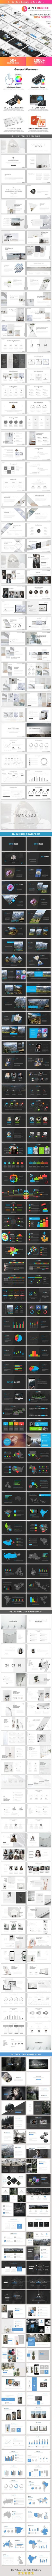 4 in 1 Modern Bundle Powerpoint - Business PowerPoint Templates